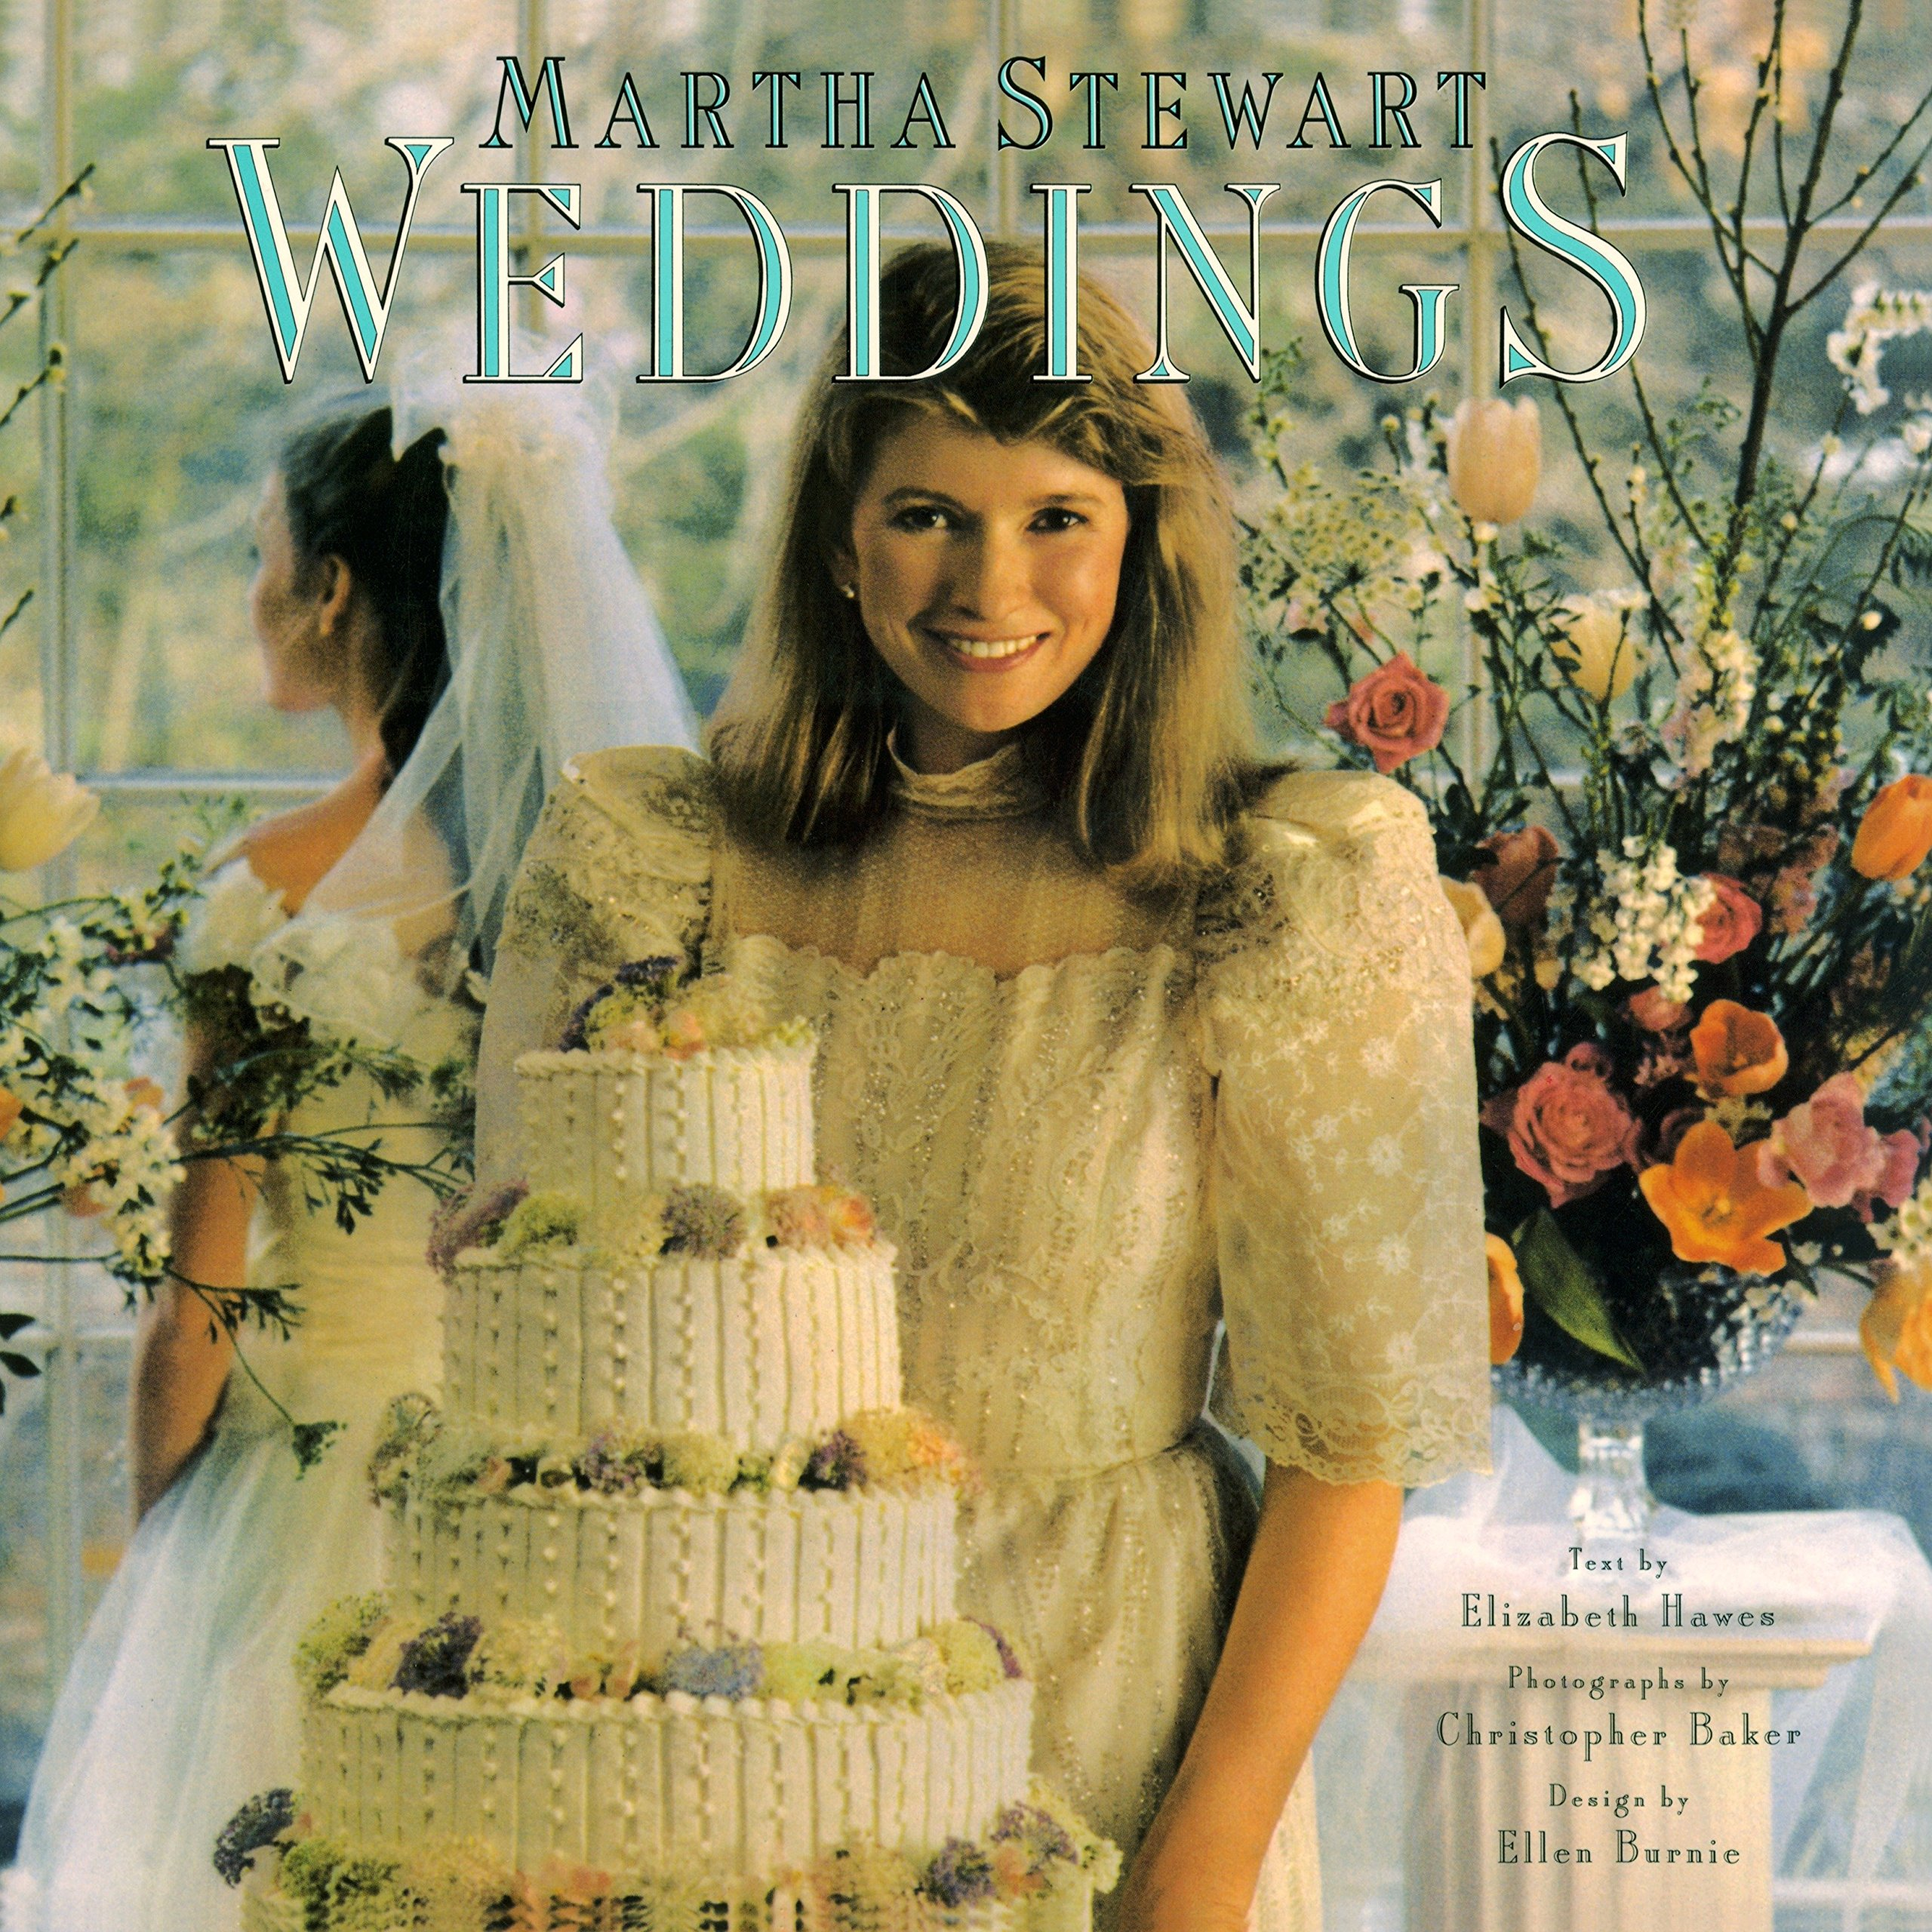 Weddings By Martha Stewart Hardcover – July 11, 1987 Clarkson Potter 0517556758 Decorative Arts Cookery - United States